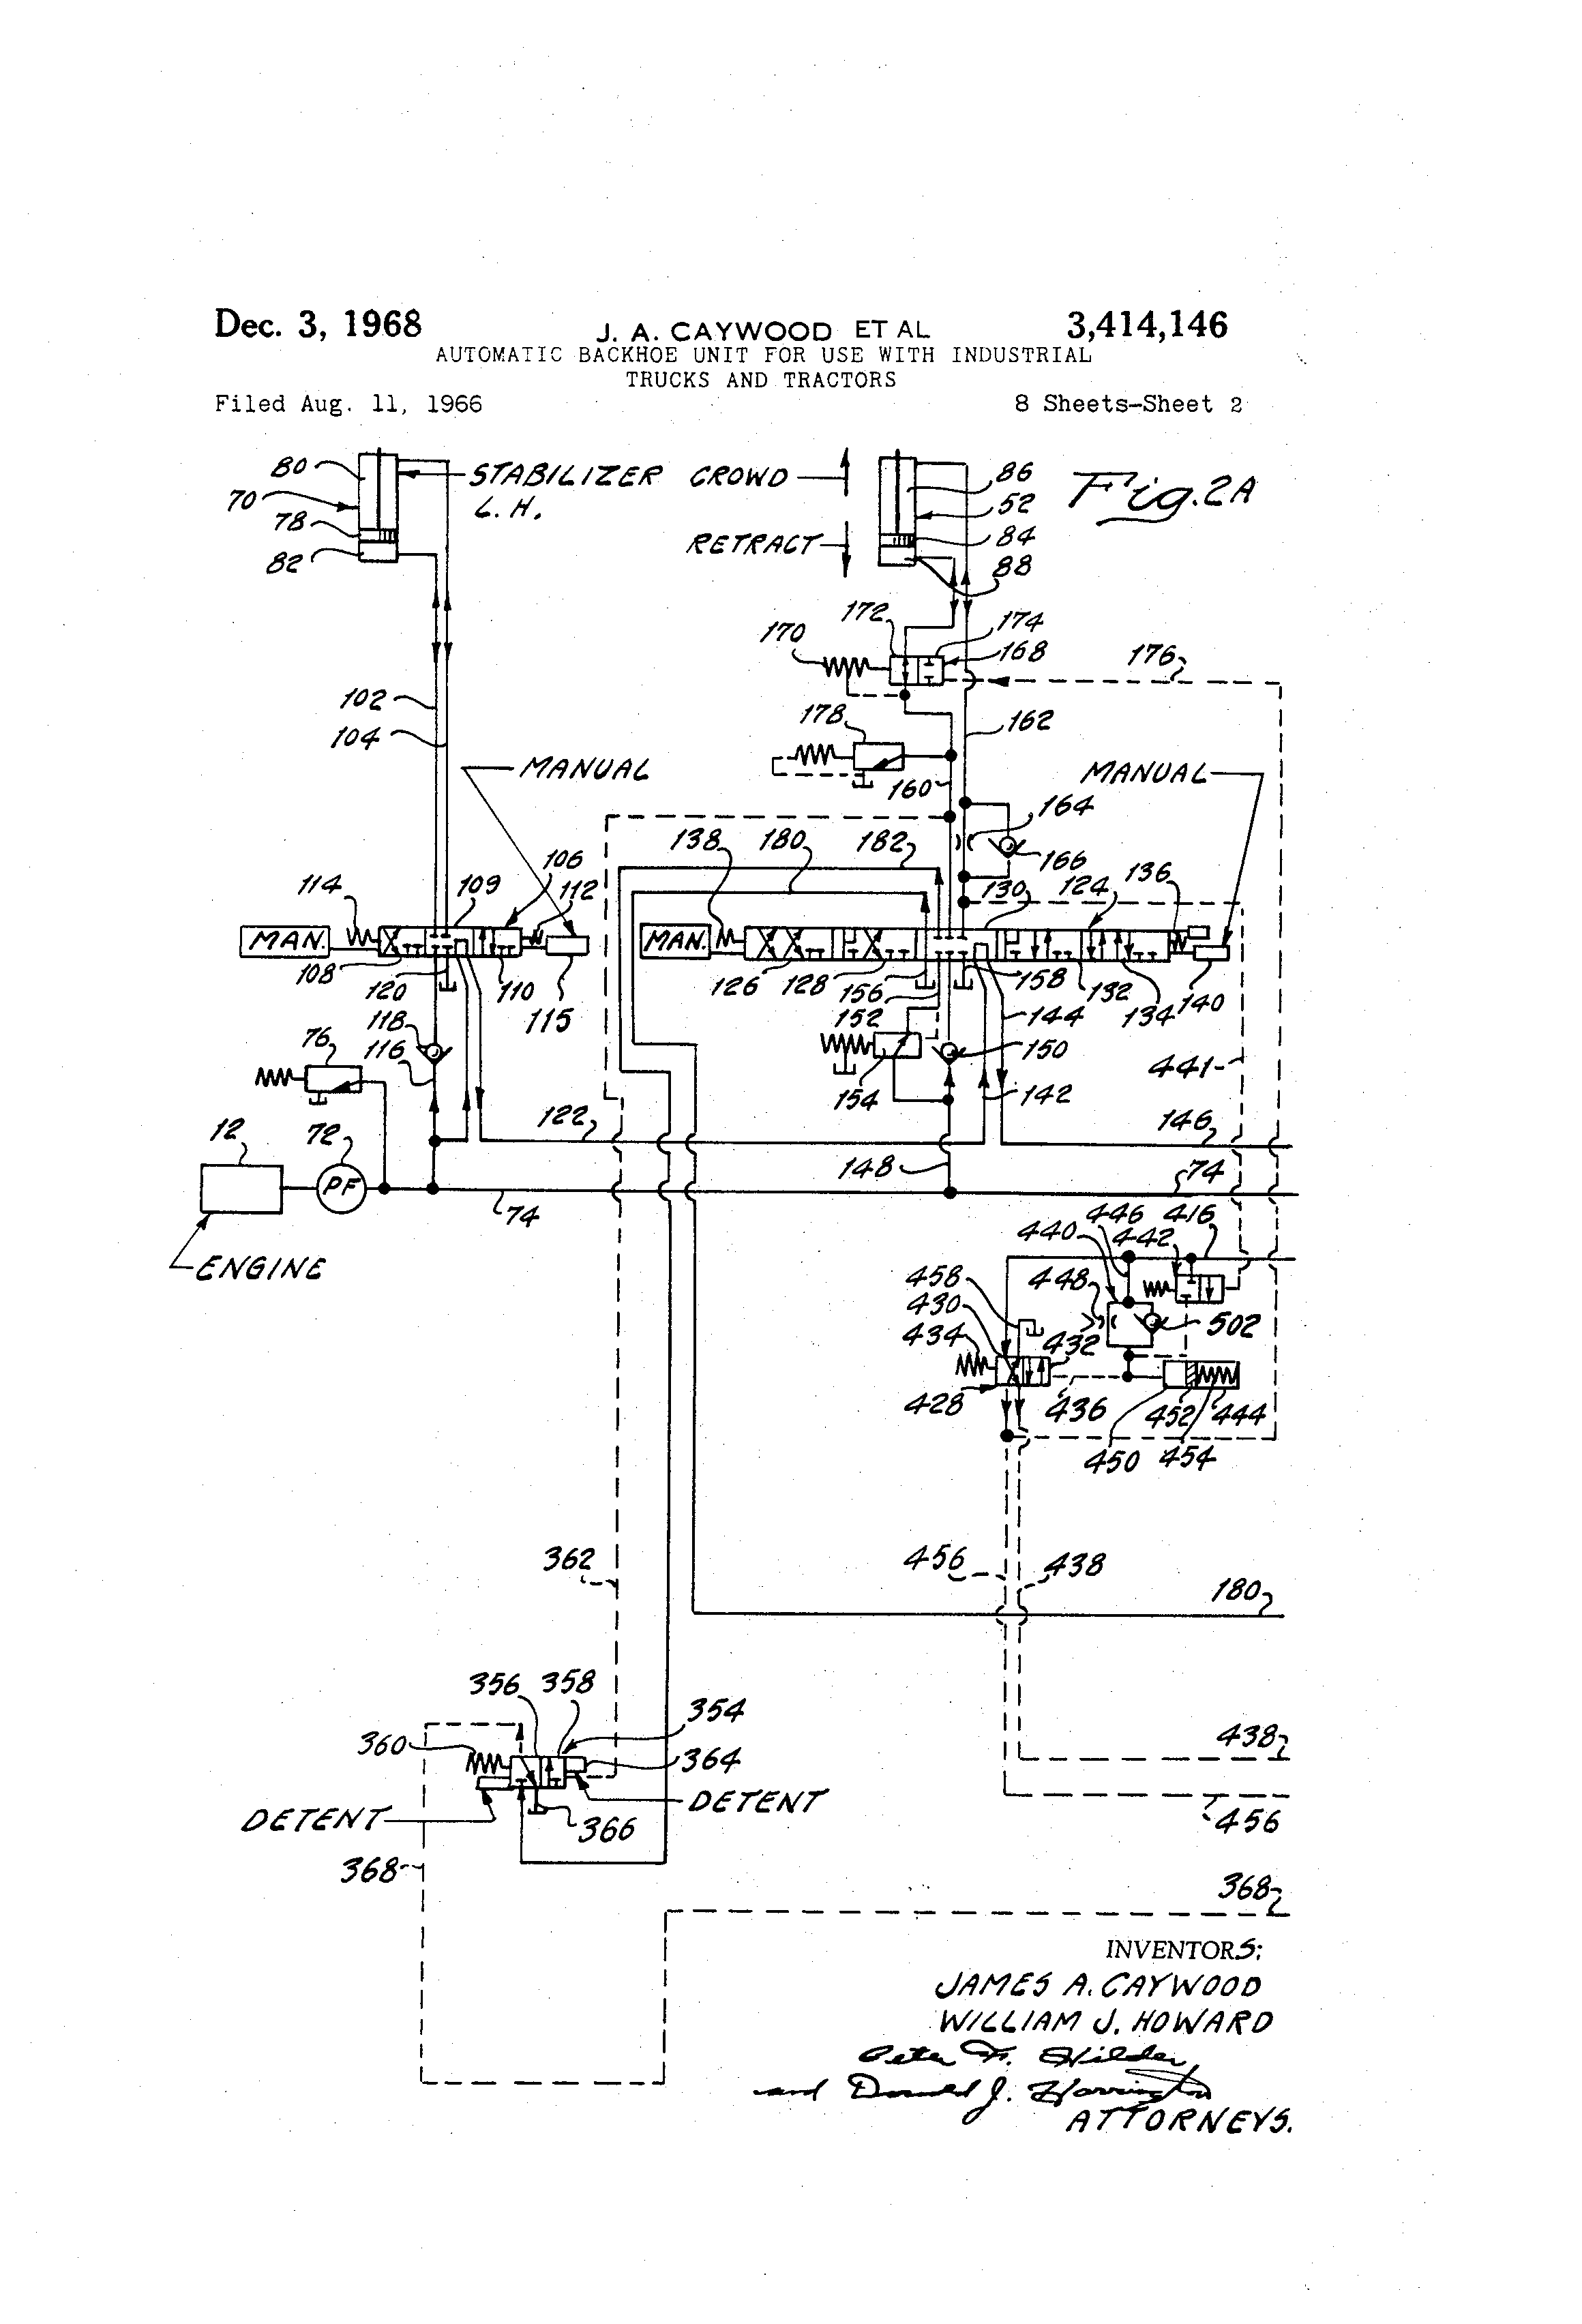 580se case backhoe wiring diagram engine wiring diagram